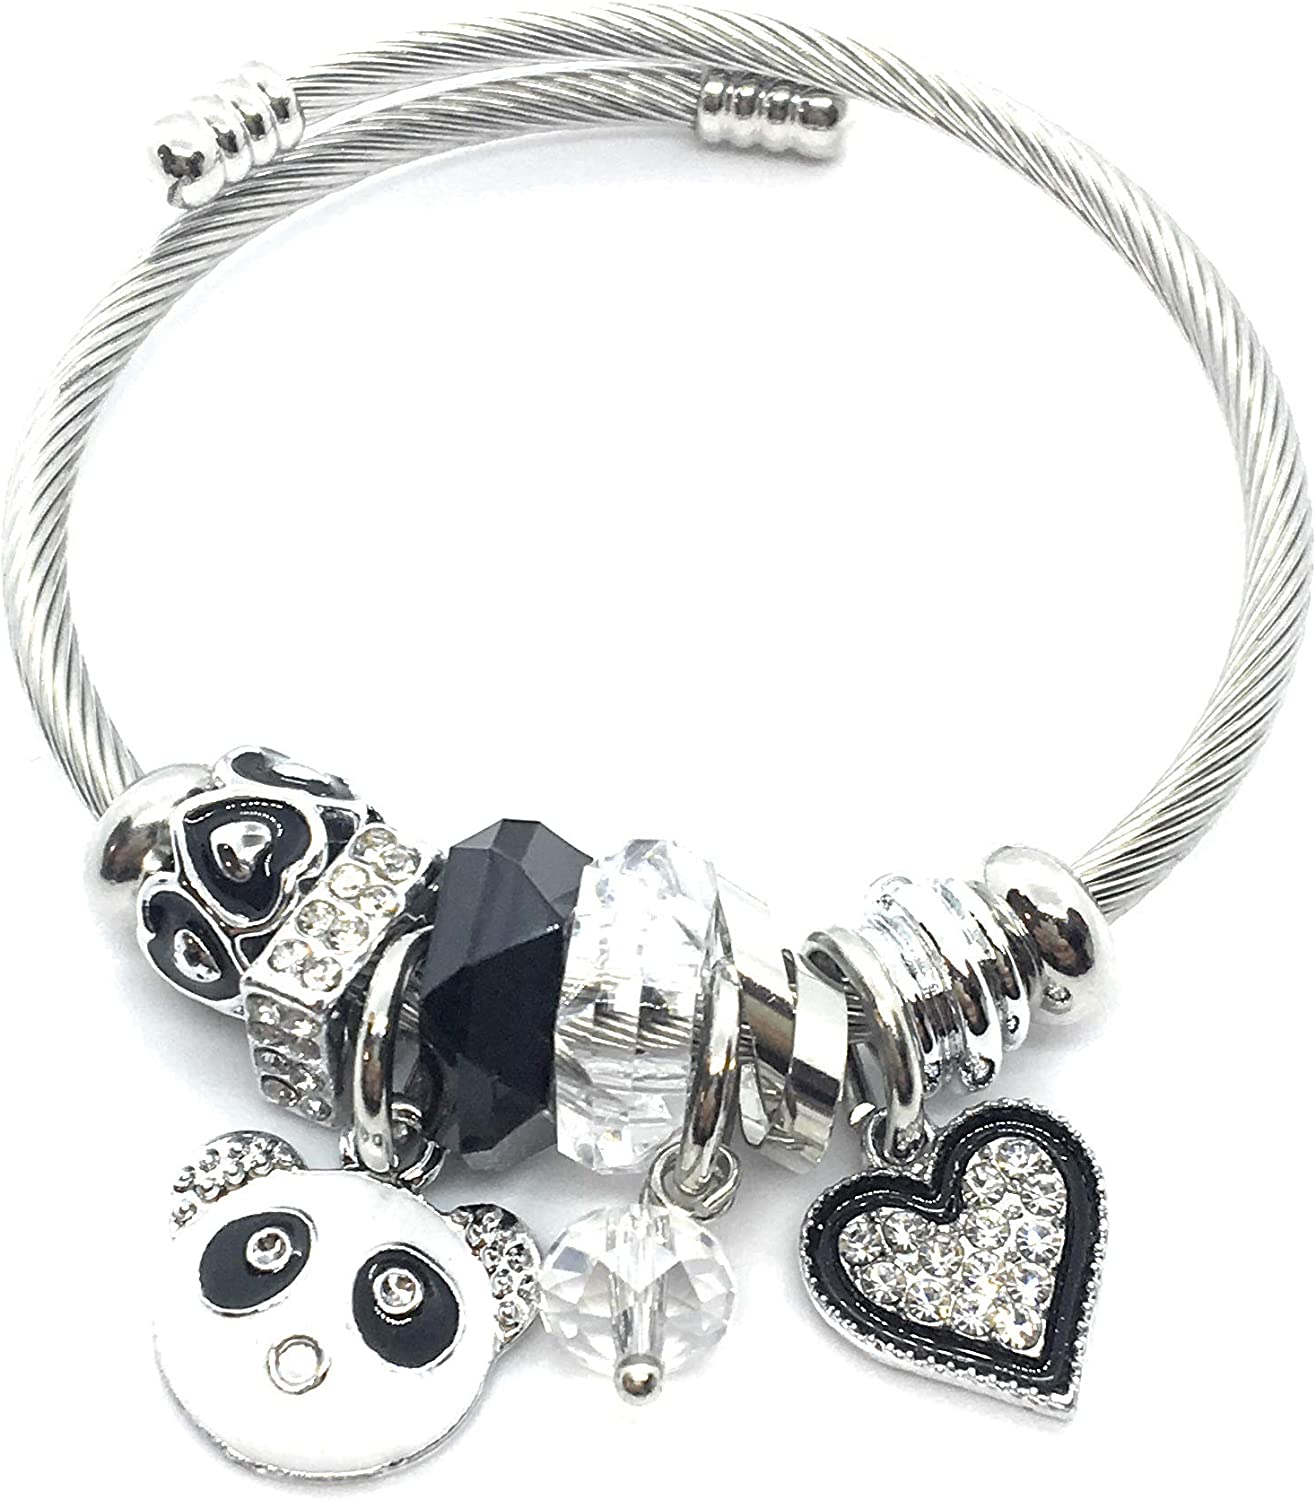 Womens Gift Idea Stainless Steel Silver Metal Boho Cuff Expandable Wrist Bangle White Panda Crystal Charm for Womens Fashion Jewelry Gift for Ladies Teen Girls Sister Mom Christmas Ideas